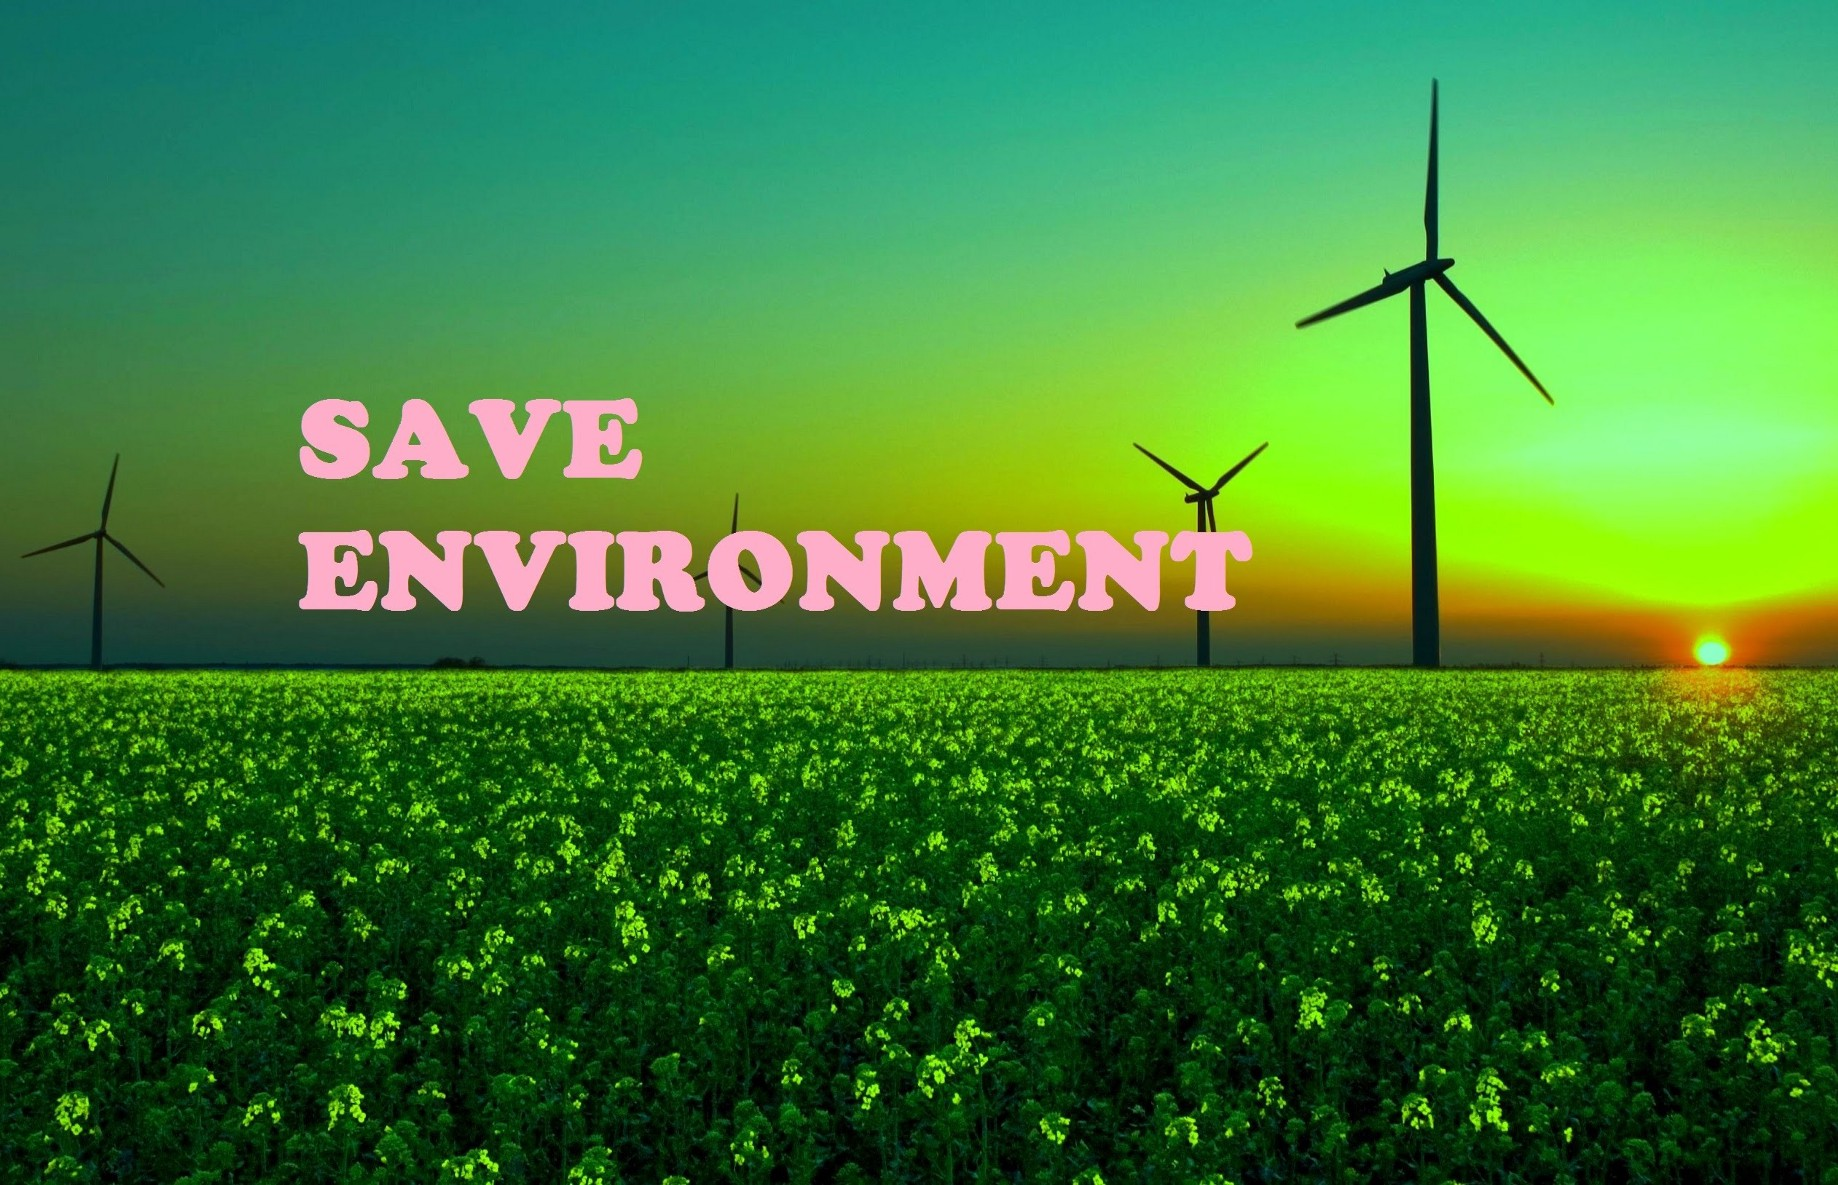 save environment essay   ganesh   medium save environment essay  saving the environment comes with education people  need to understand the importance of saving nature